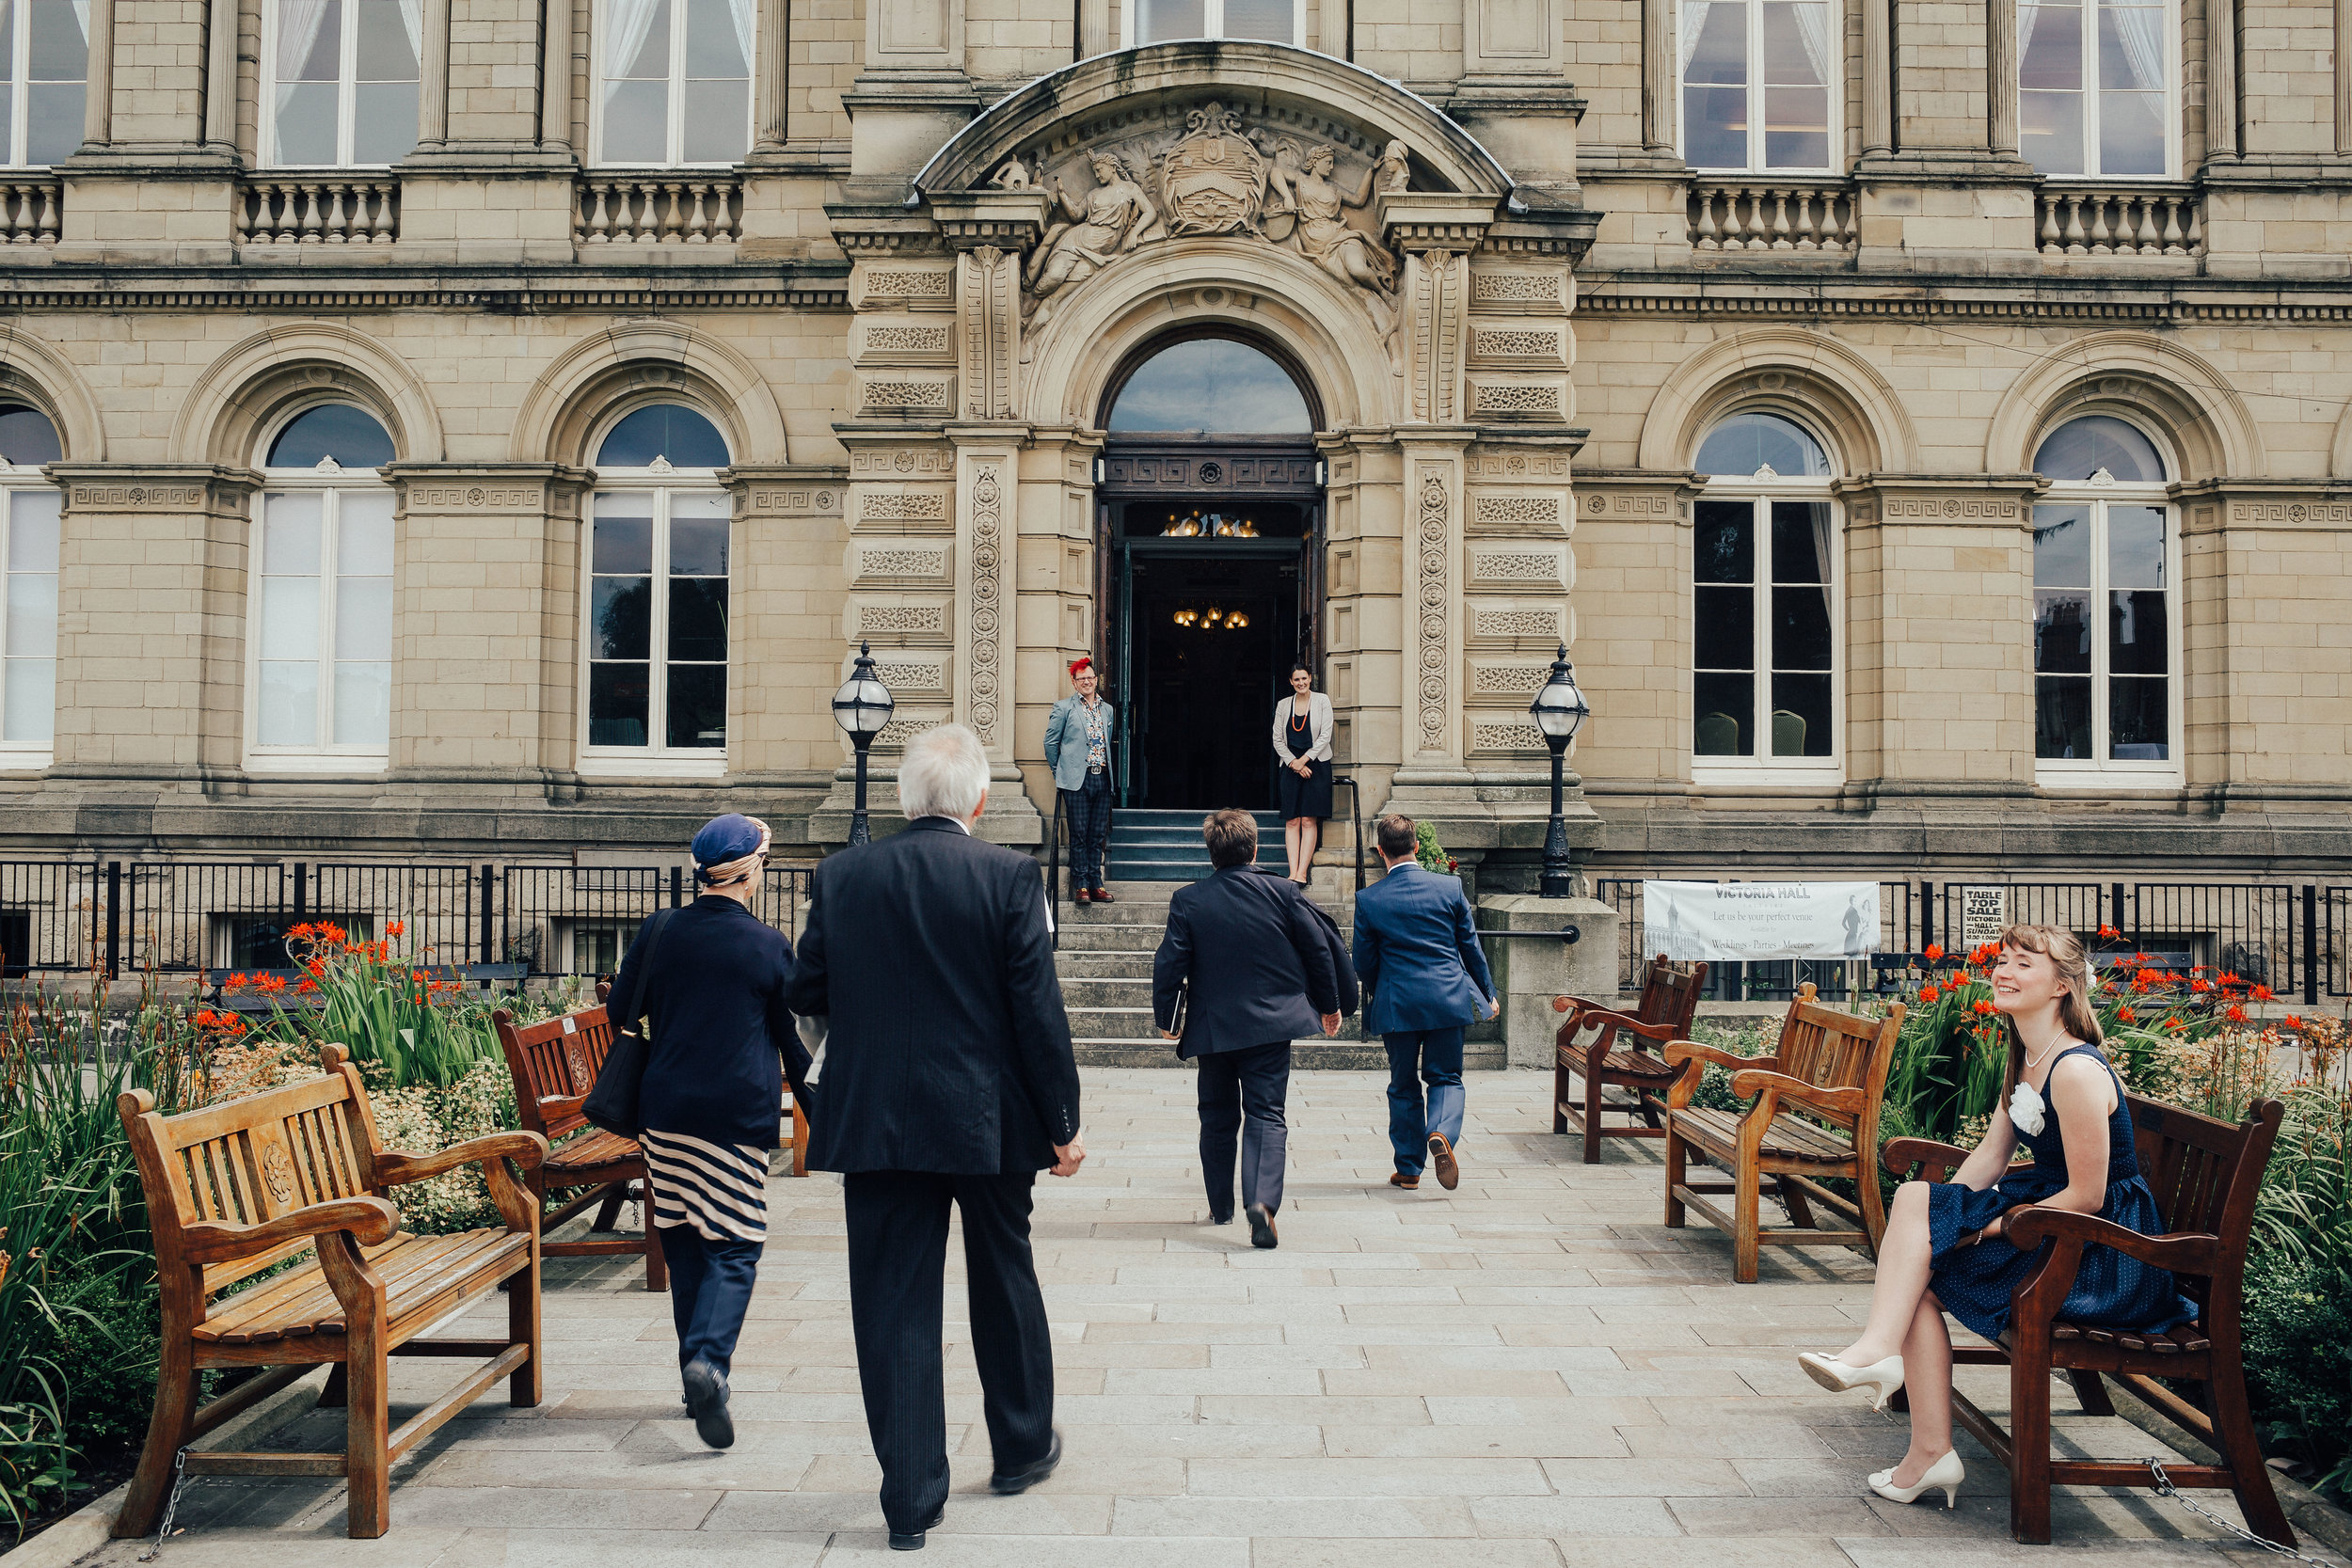 VICTORIA_HALL_SALTAIRE_VINTAGE_YORKSHIRE_WEDDING_PJ_PHILLIPS_PHOTOGRAPHY_15.jpg